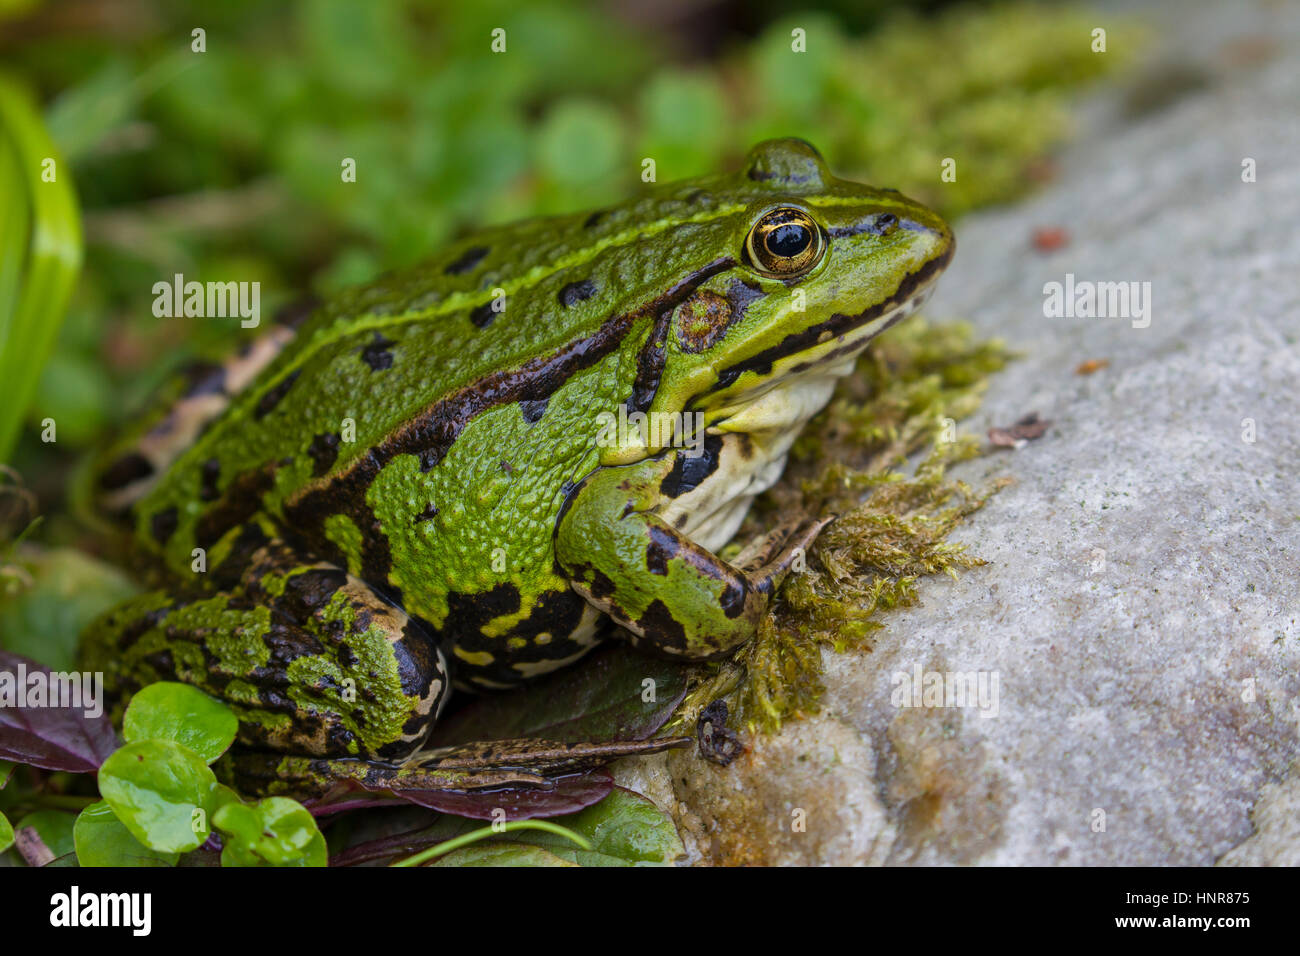 Edible frog / common water frog / green frog (Pelophylax kl. esculentus / Rana kl. esculenta) on land - Stock Image